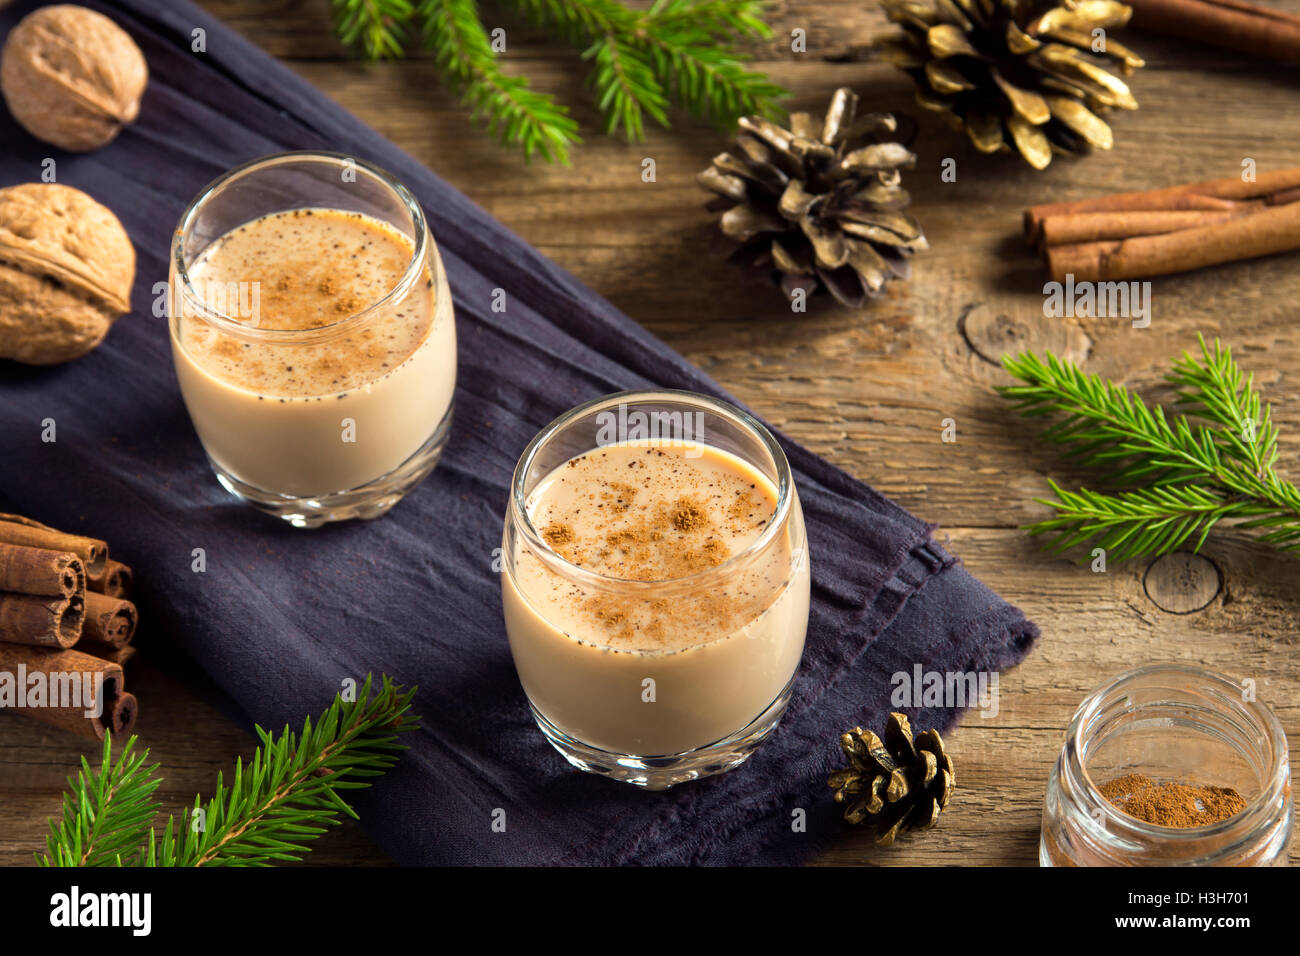 Eggnog with cinnamon in glasses over rustic wooden background with Christmas decor  - homemade Christmas festive Stock Photo